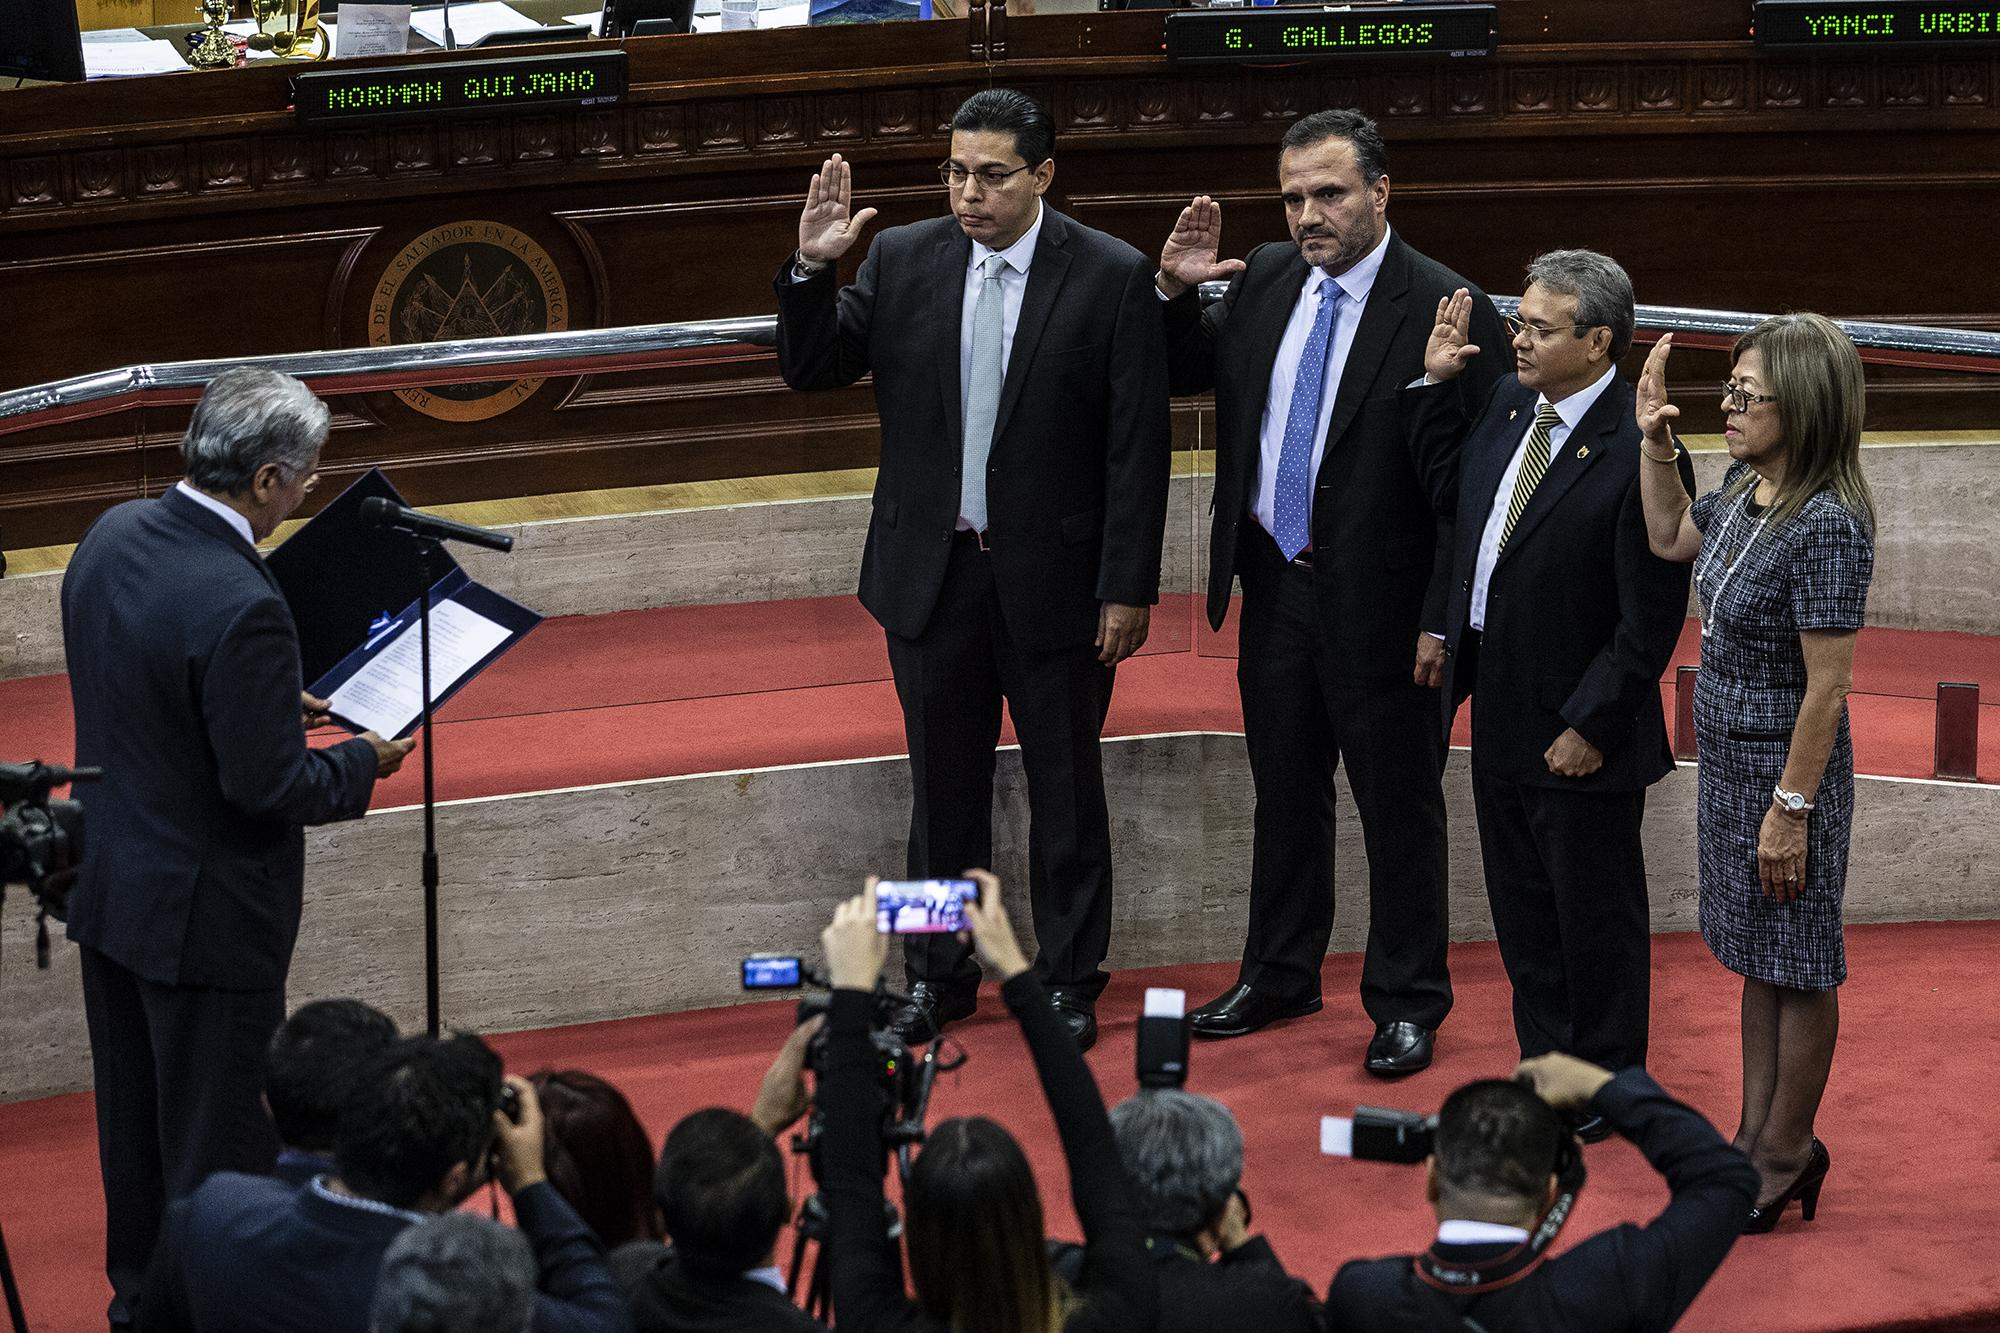 (From left to right) Aldo Cader, Carlos Sergio Avilés, Carlos Sánchez and Marina Marenco de Torrento, four of the five magistrates of the highest court of justice in El Salvador, at their swearing-in on Friday, November 16, 2018. Photo by Carlos Barrera/El Faro.